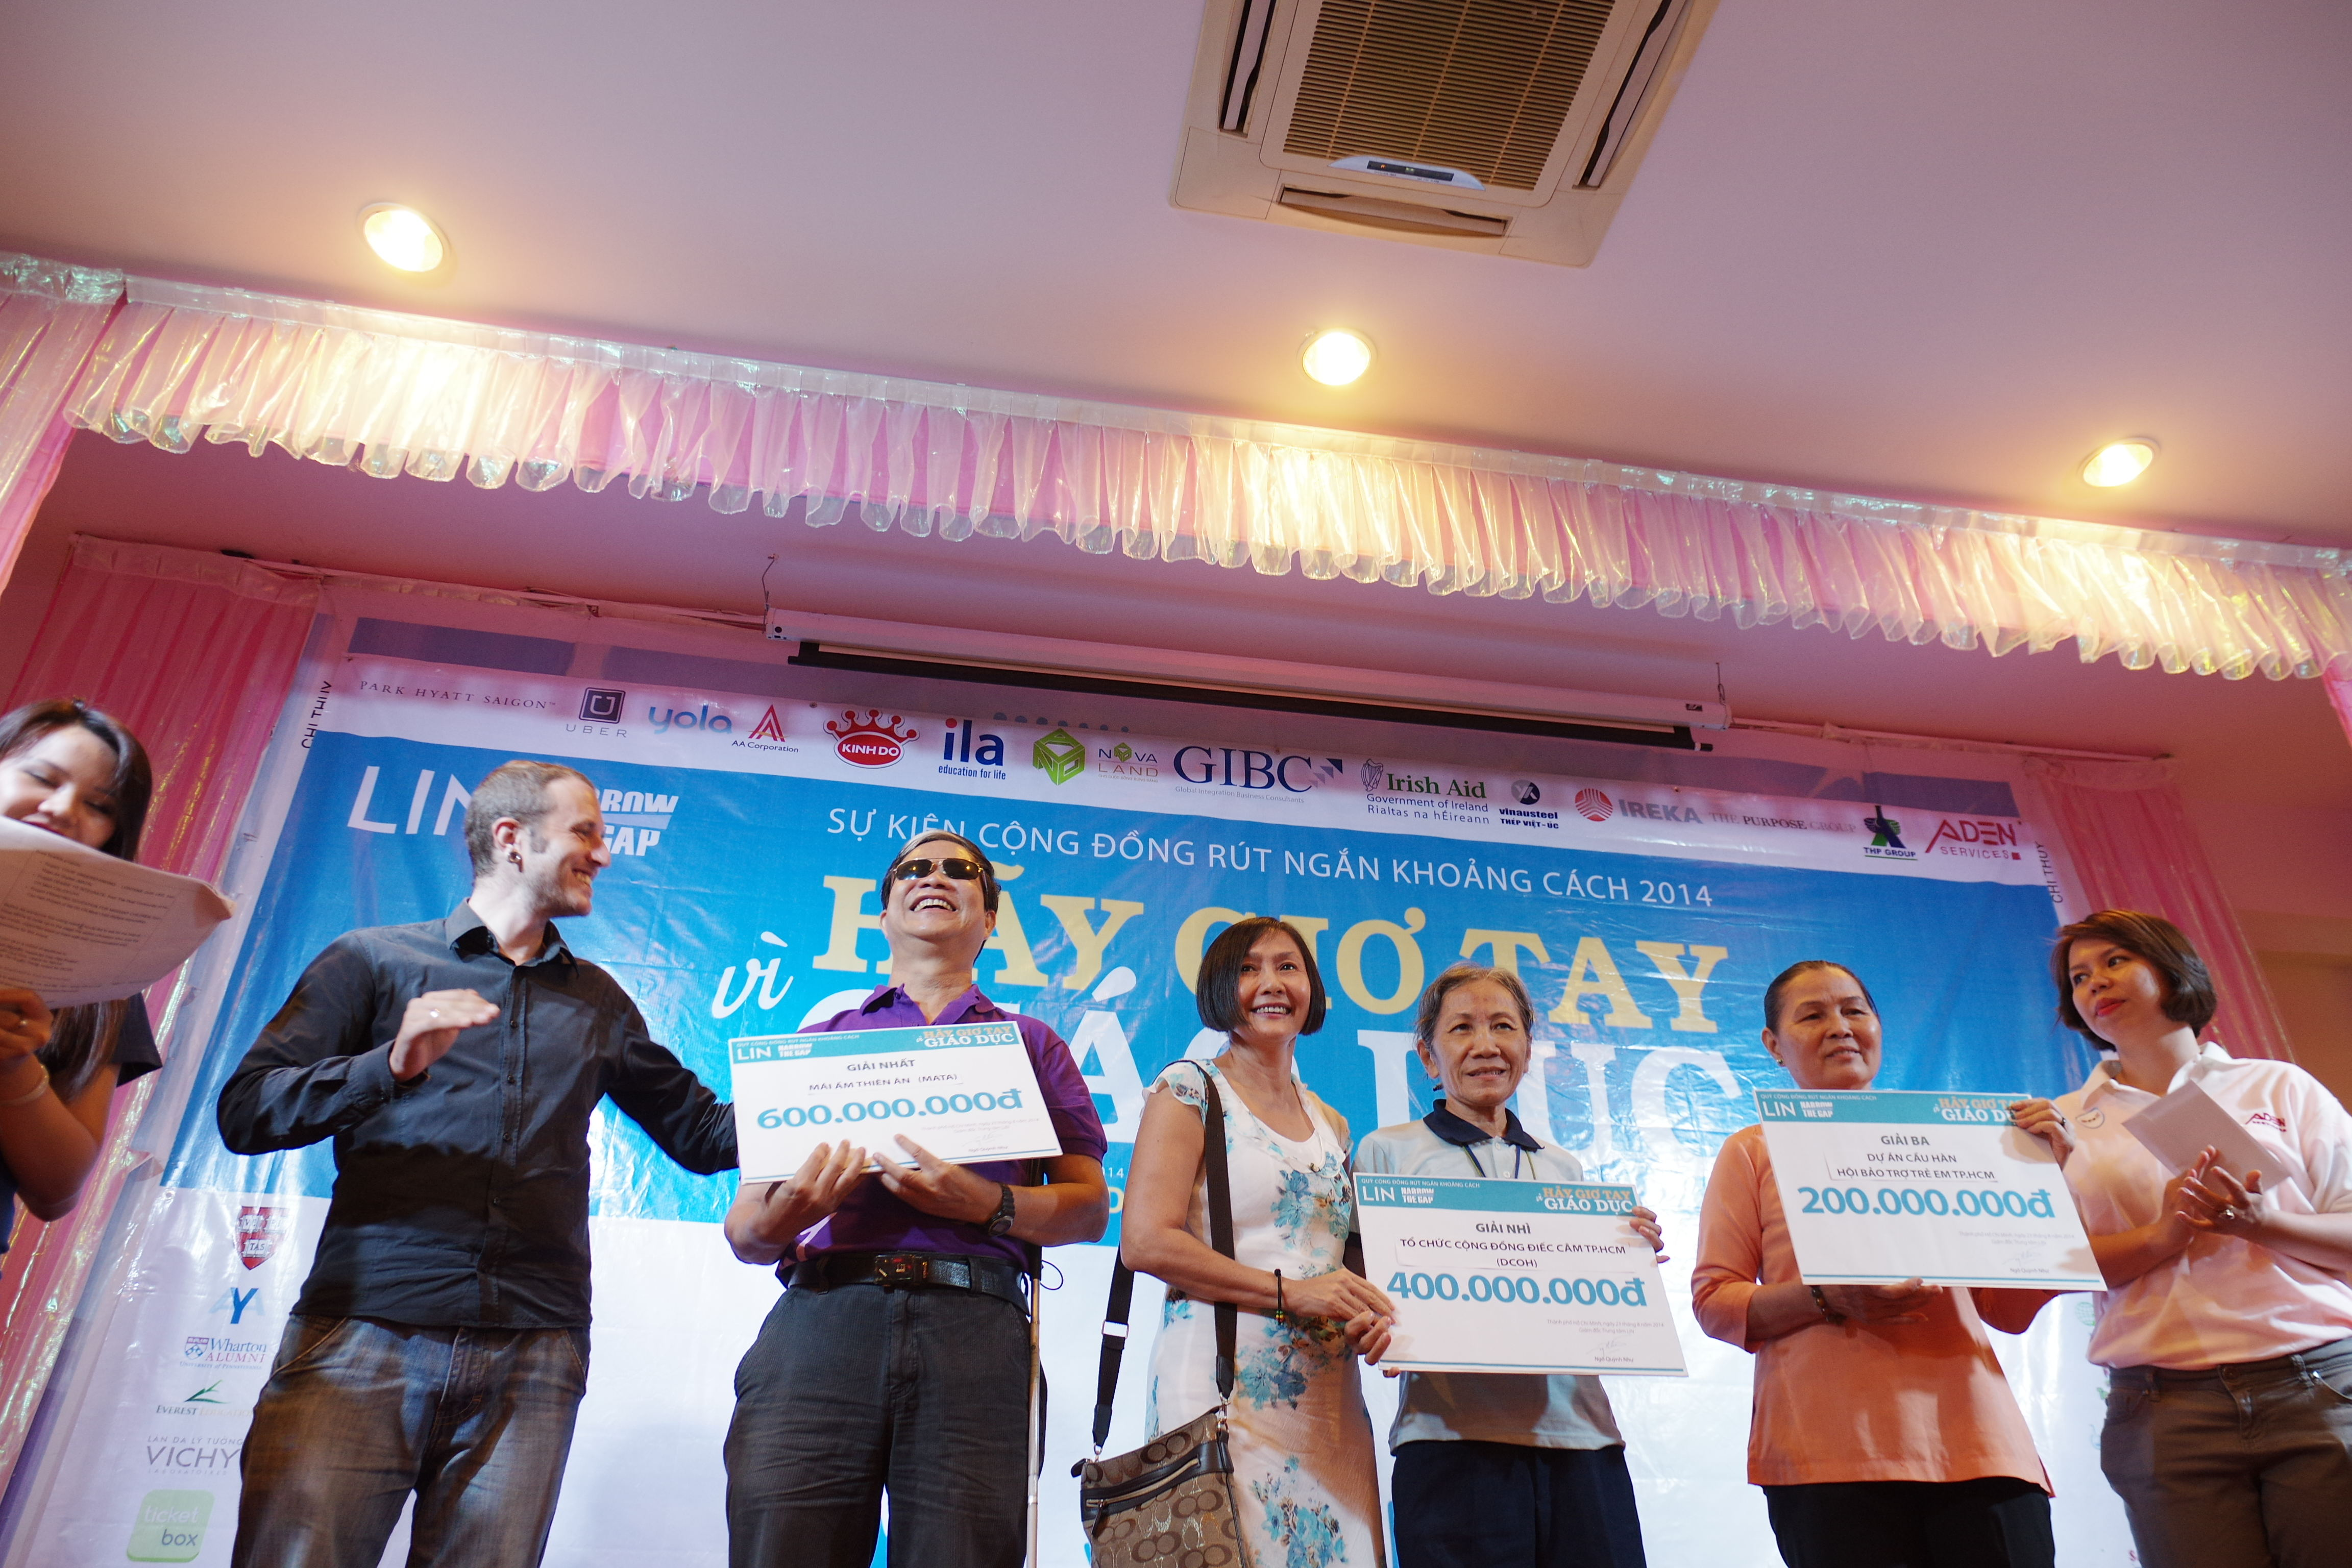 Nonprofits win US$56,510 grant for community projects in Vietnam